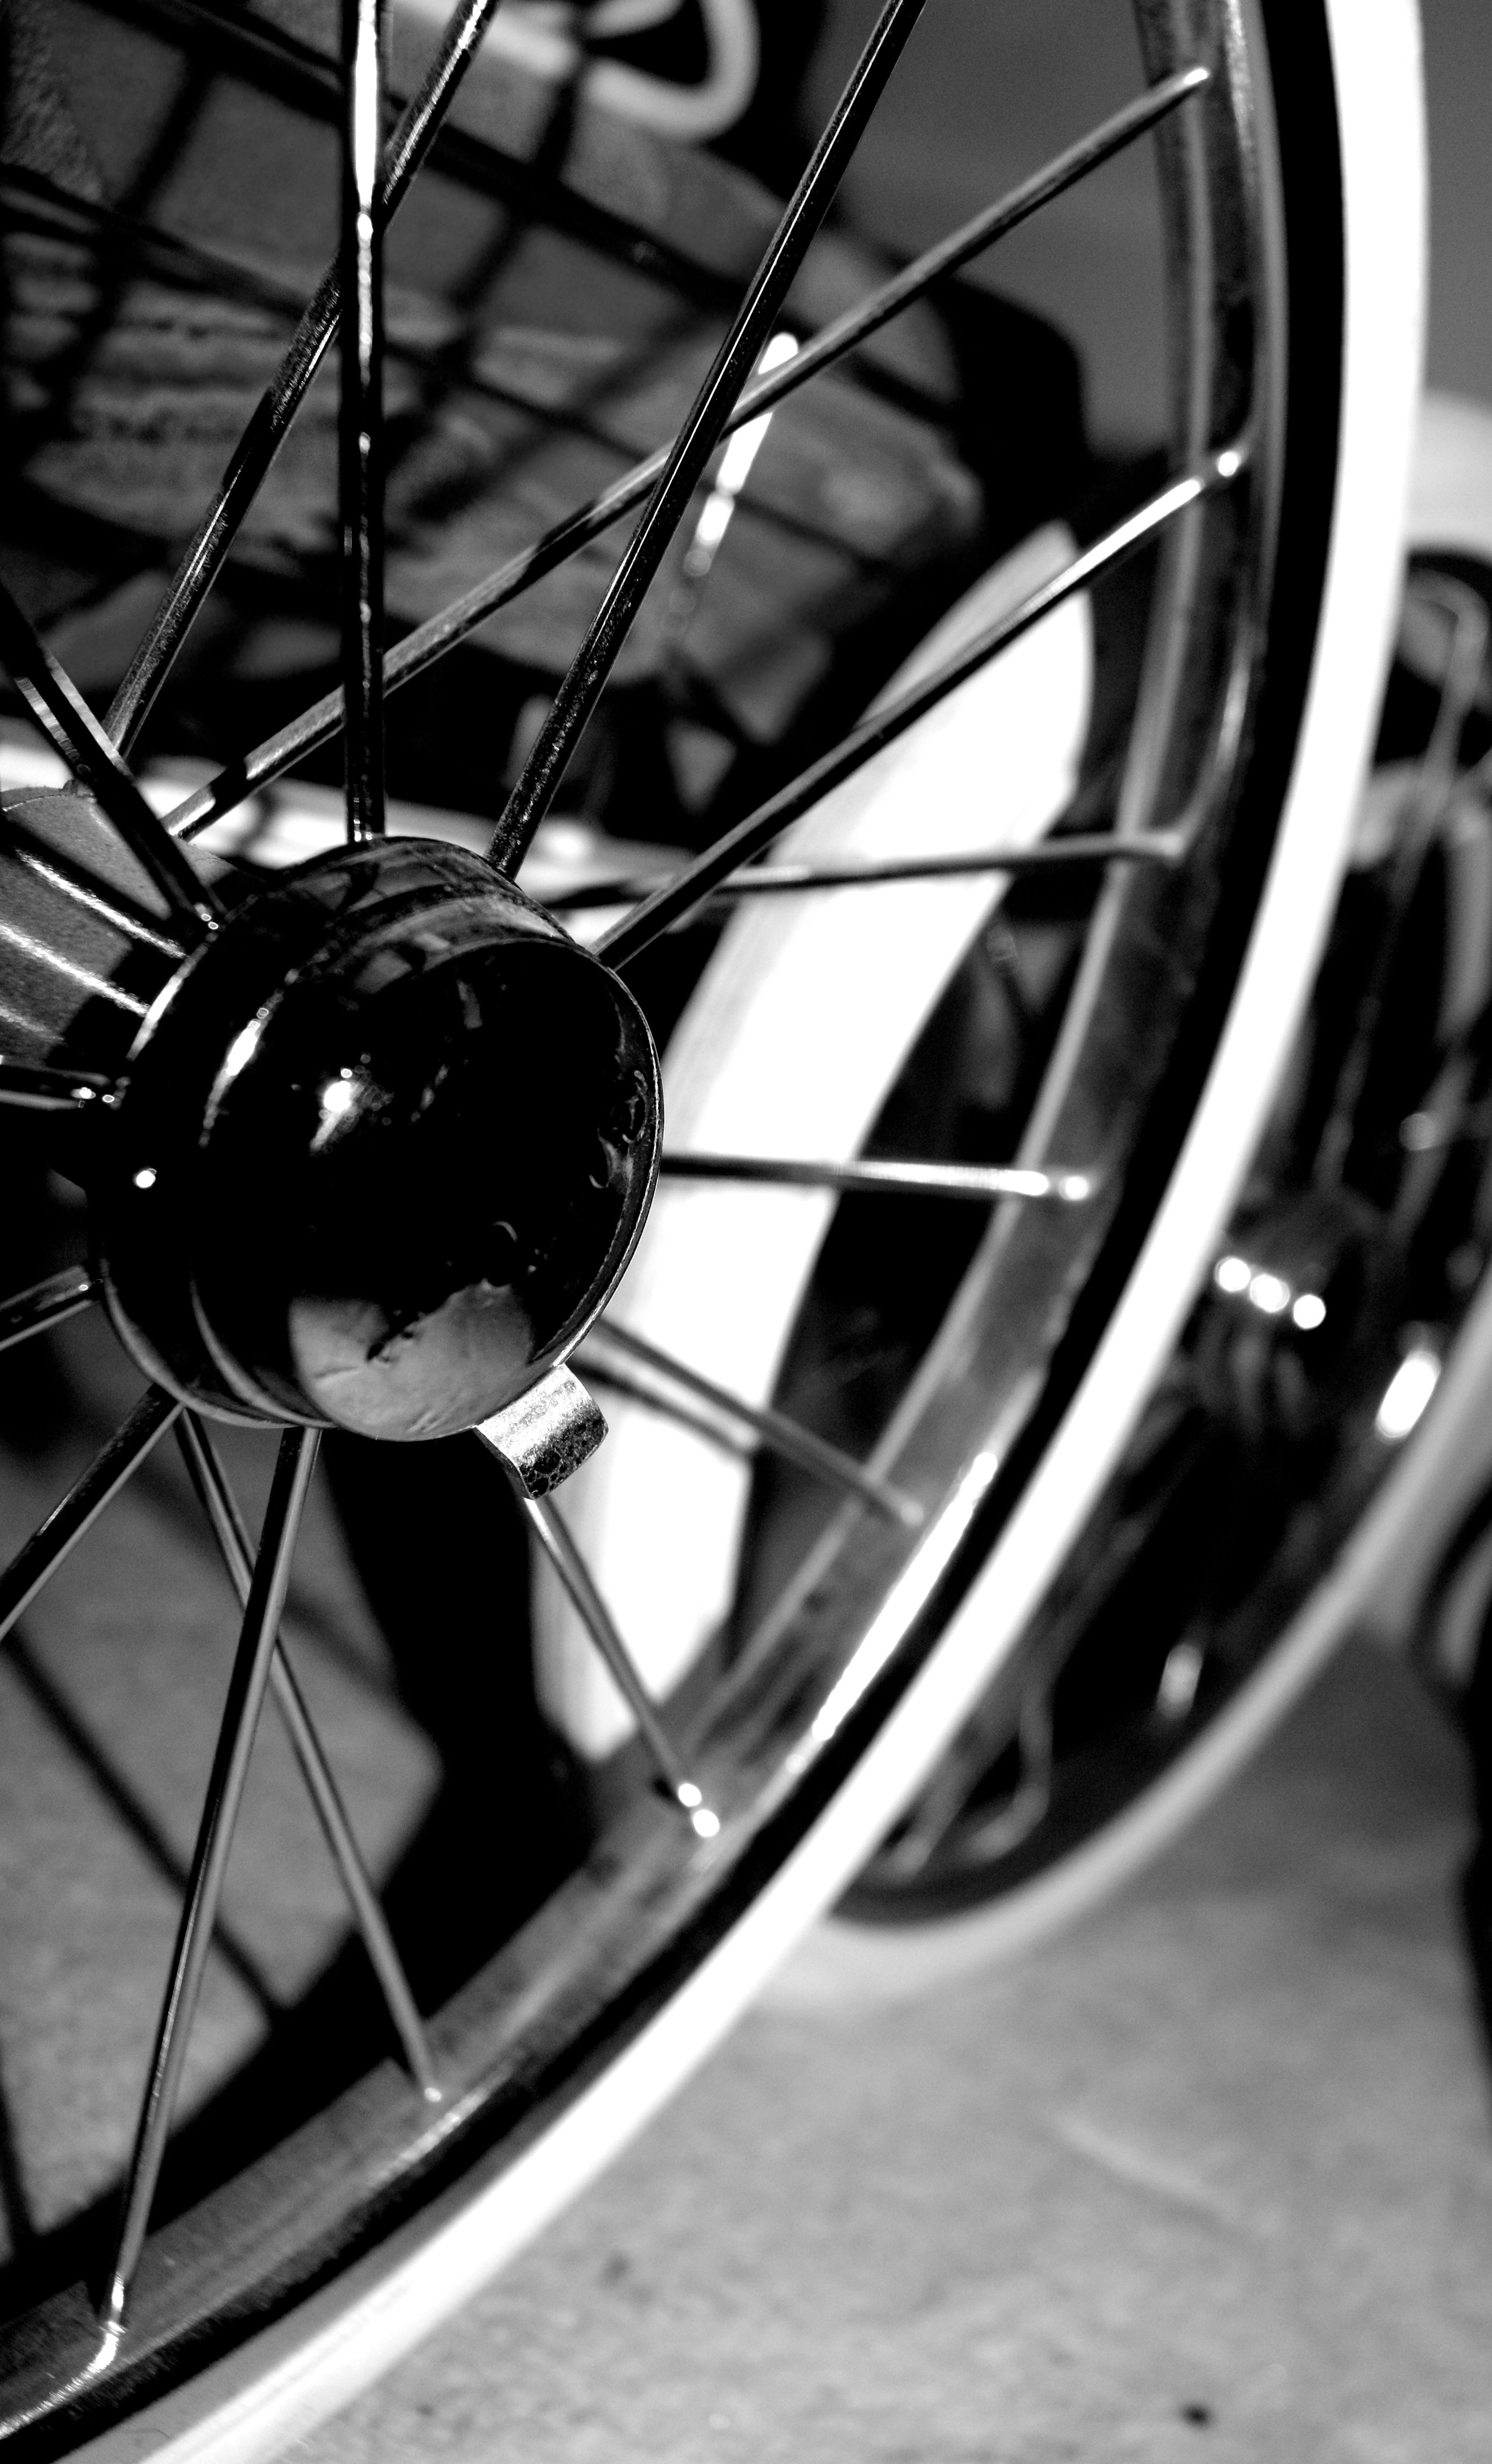 A different view of my sister's prams spokes